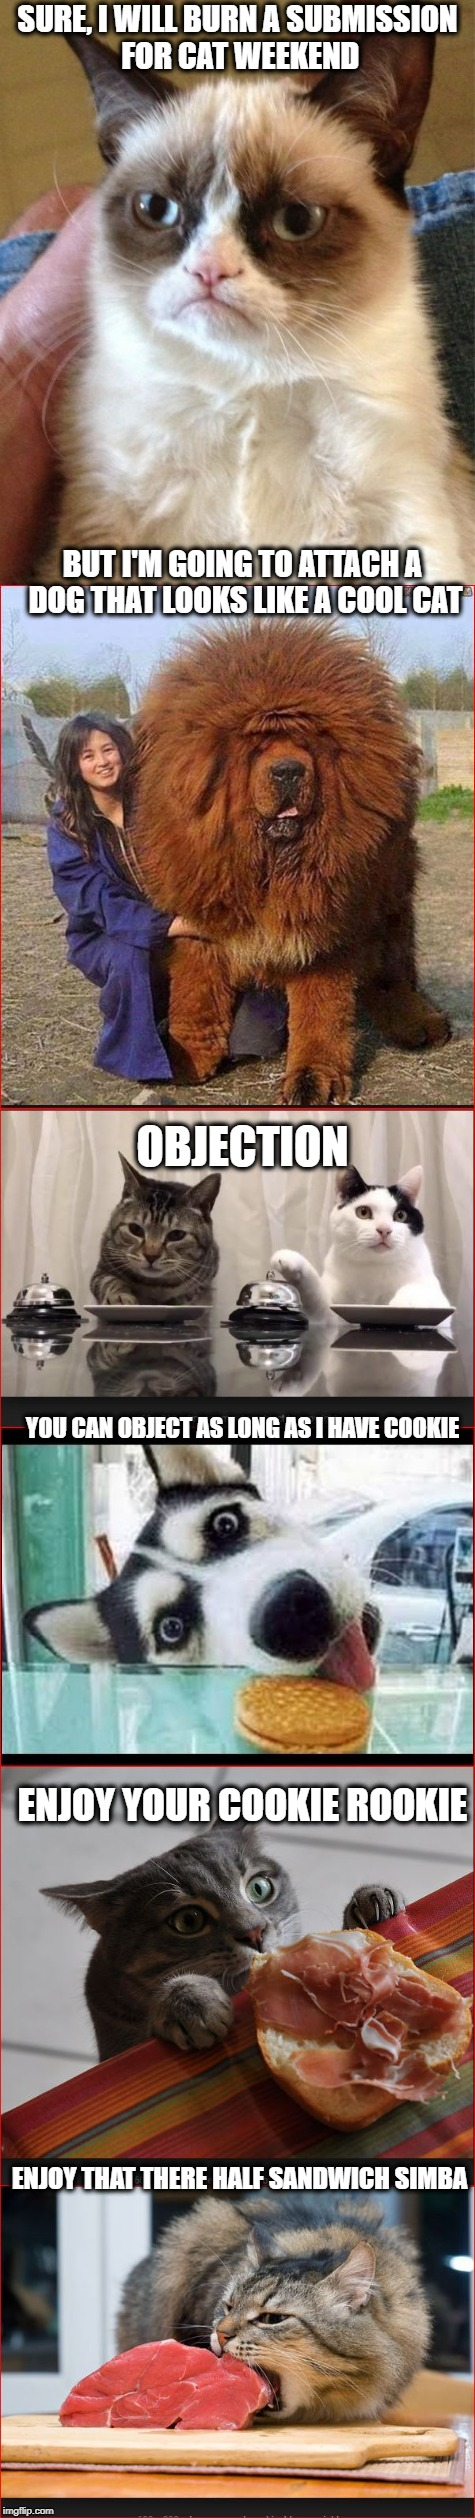 Grumpy cat is old and tired now so.. | SURE, I WILL BURN A SUBMISSION FOR CAT WEEKEND BUT I'M GOING TO ATTACH A DOG THAT LOOKS LIKE A COOL CAT OBJECTION YOU CAN OBJECT AS LONG AS  | image tagged in grumpy cat,cats,cat weekend,humor | made w/ Imgflip meme maker